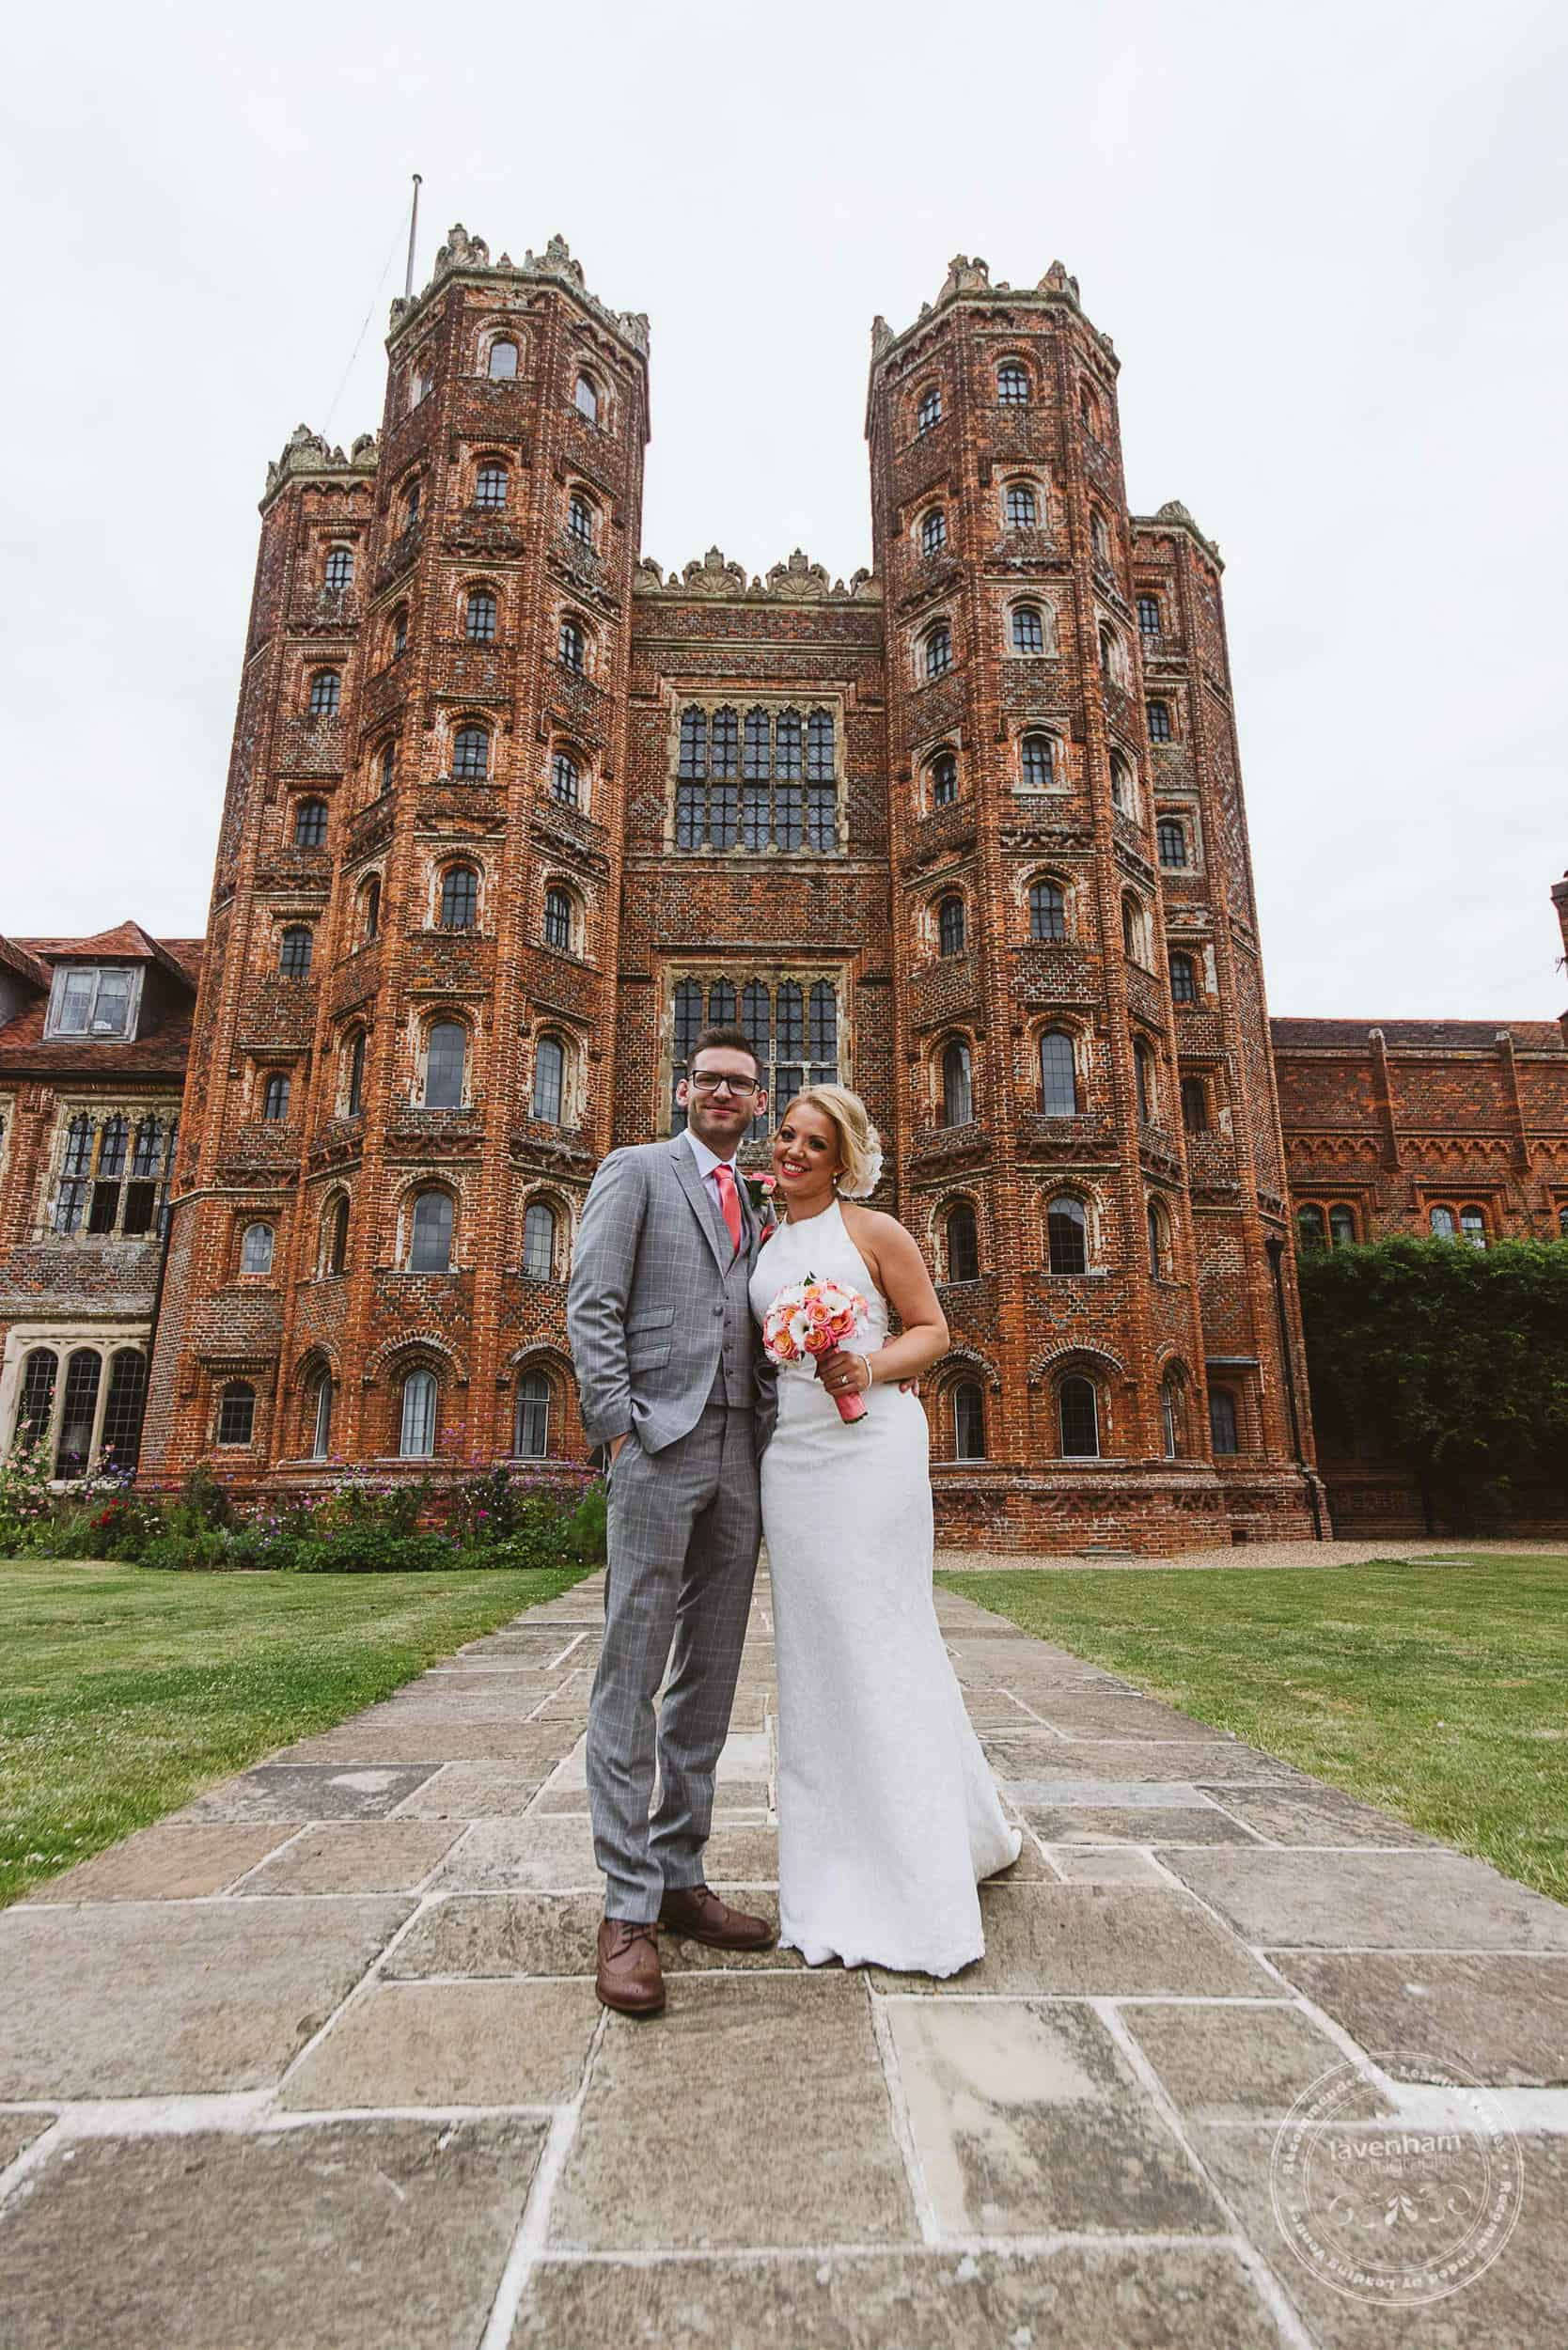 140717 Layer Marney Wedding Photography by Lavenham Photographic 096